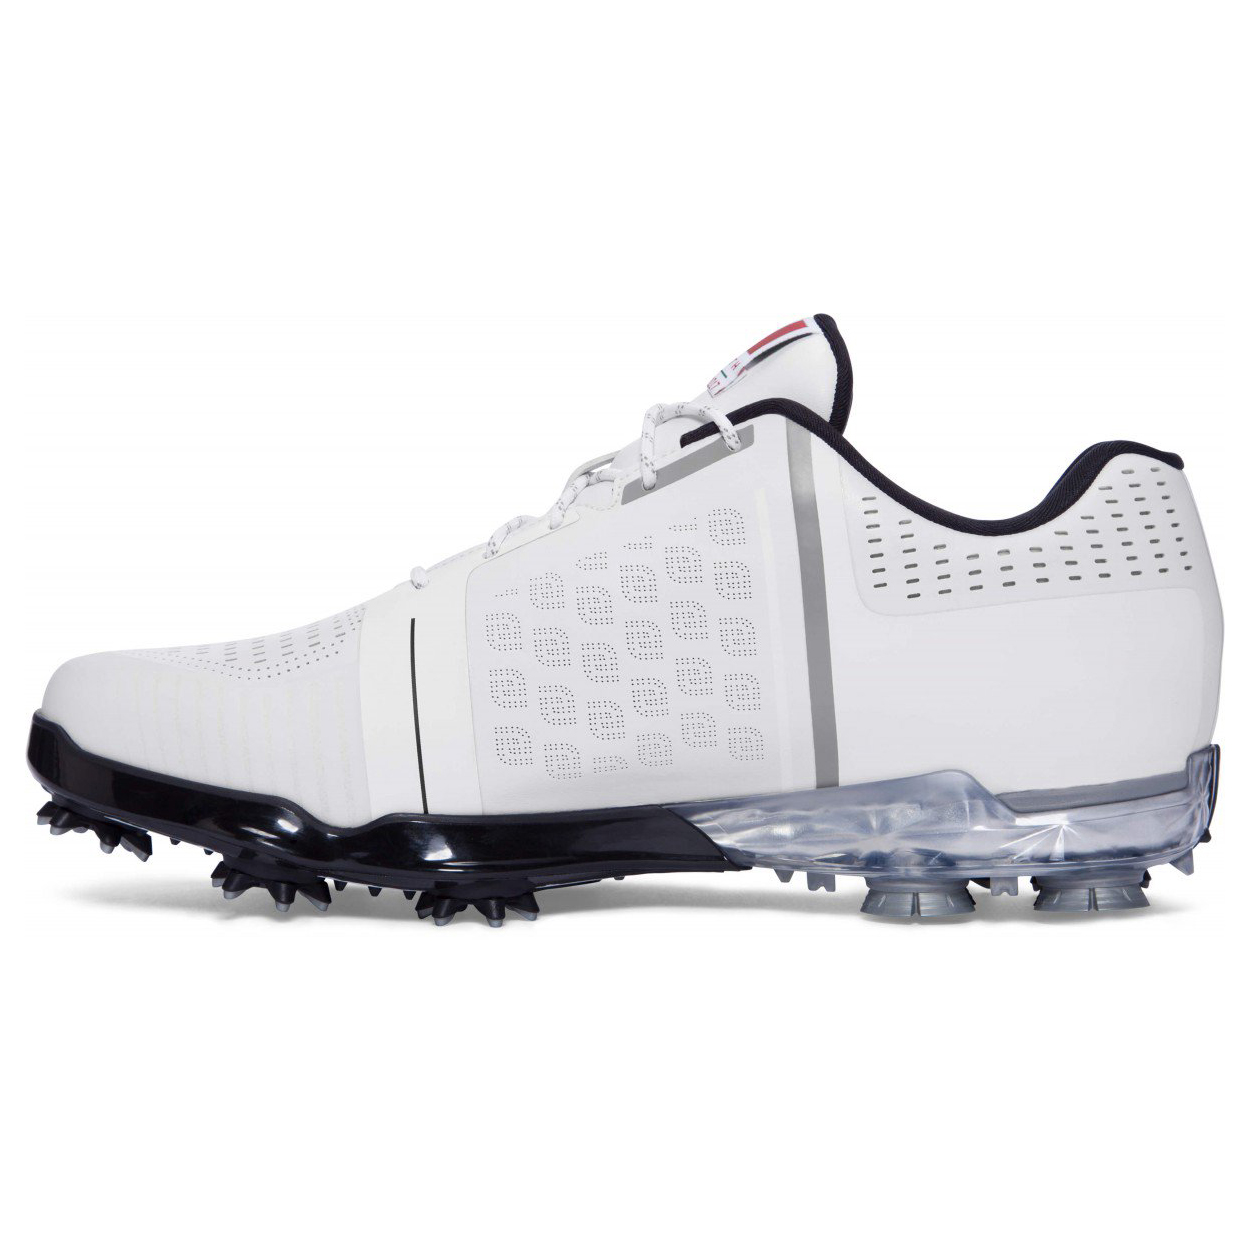 Under-Armour-Men-039-s-Spieth-I-Golf-Shoes-Brand-New thumbnail 9